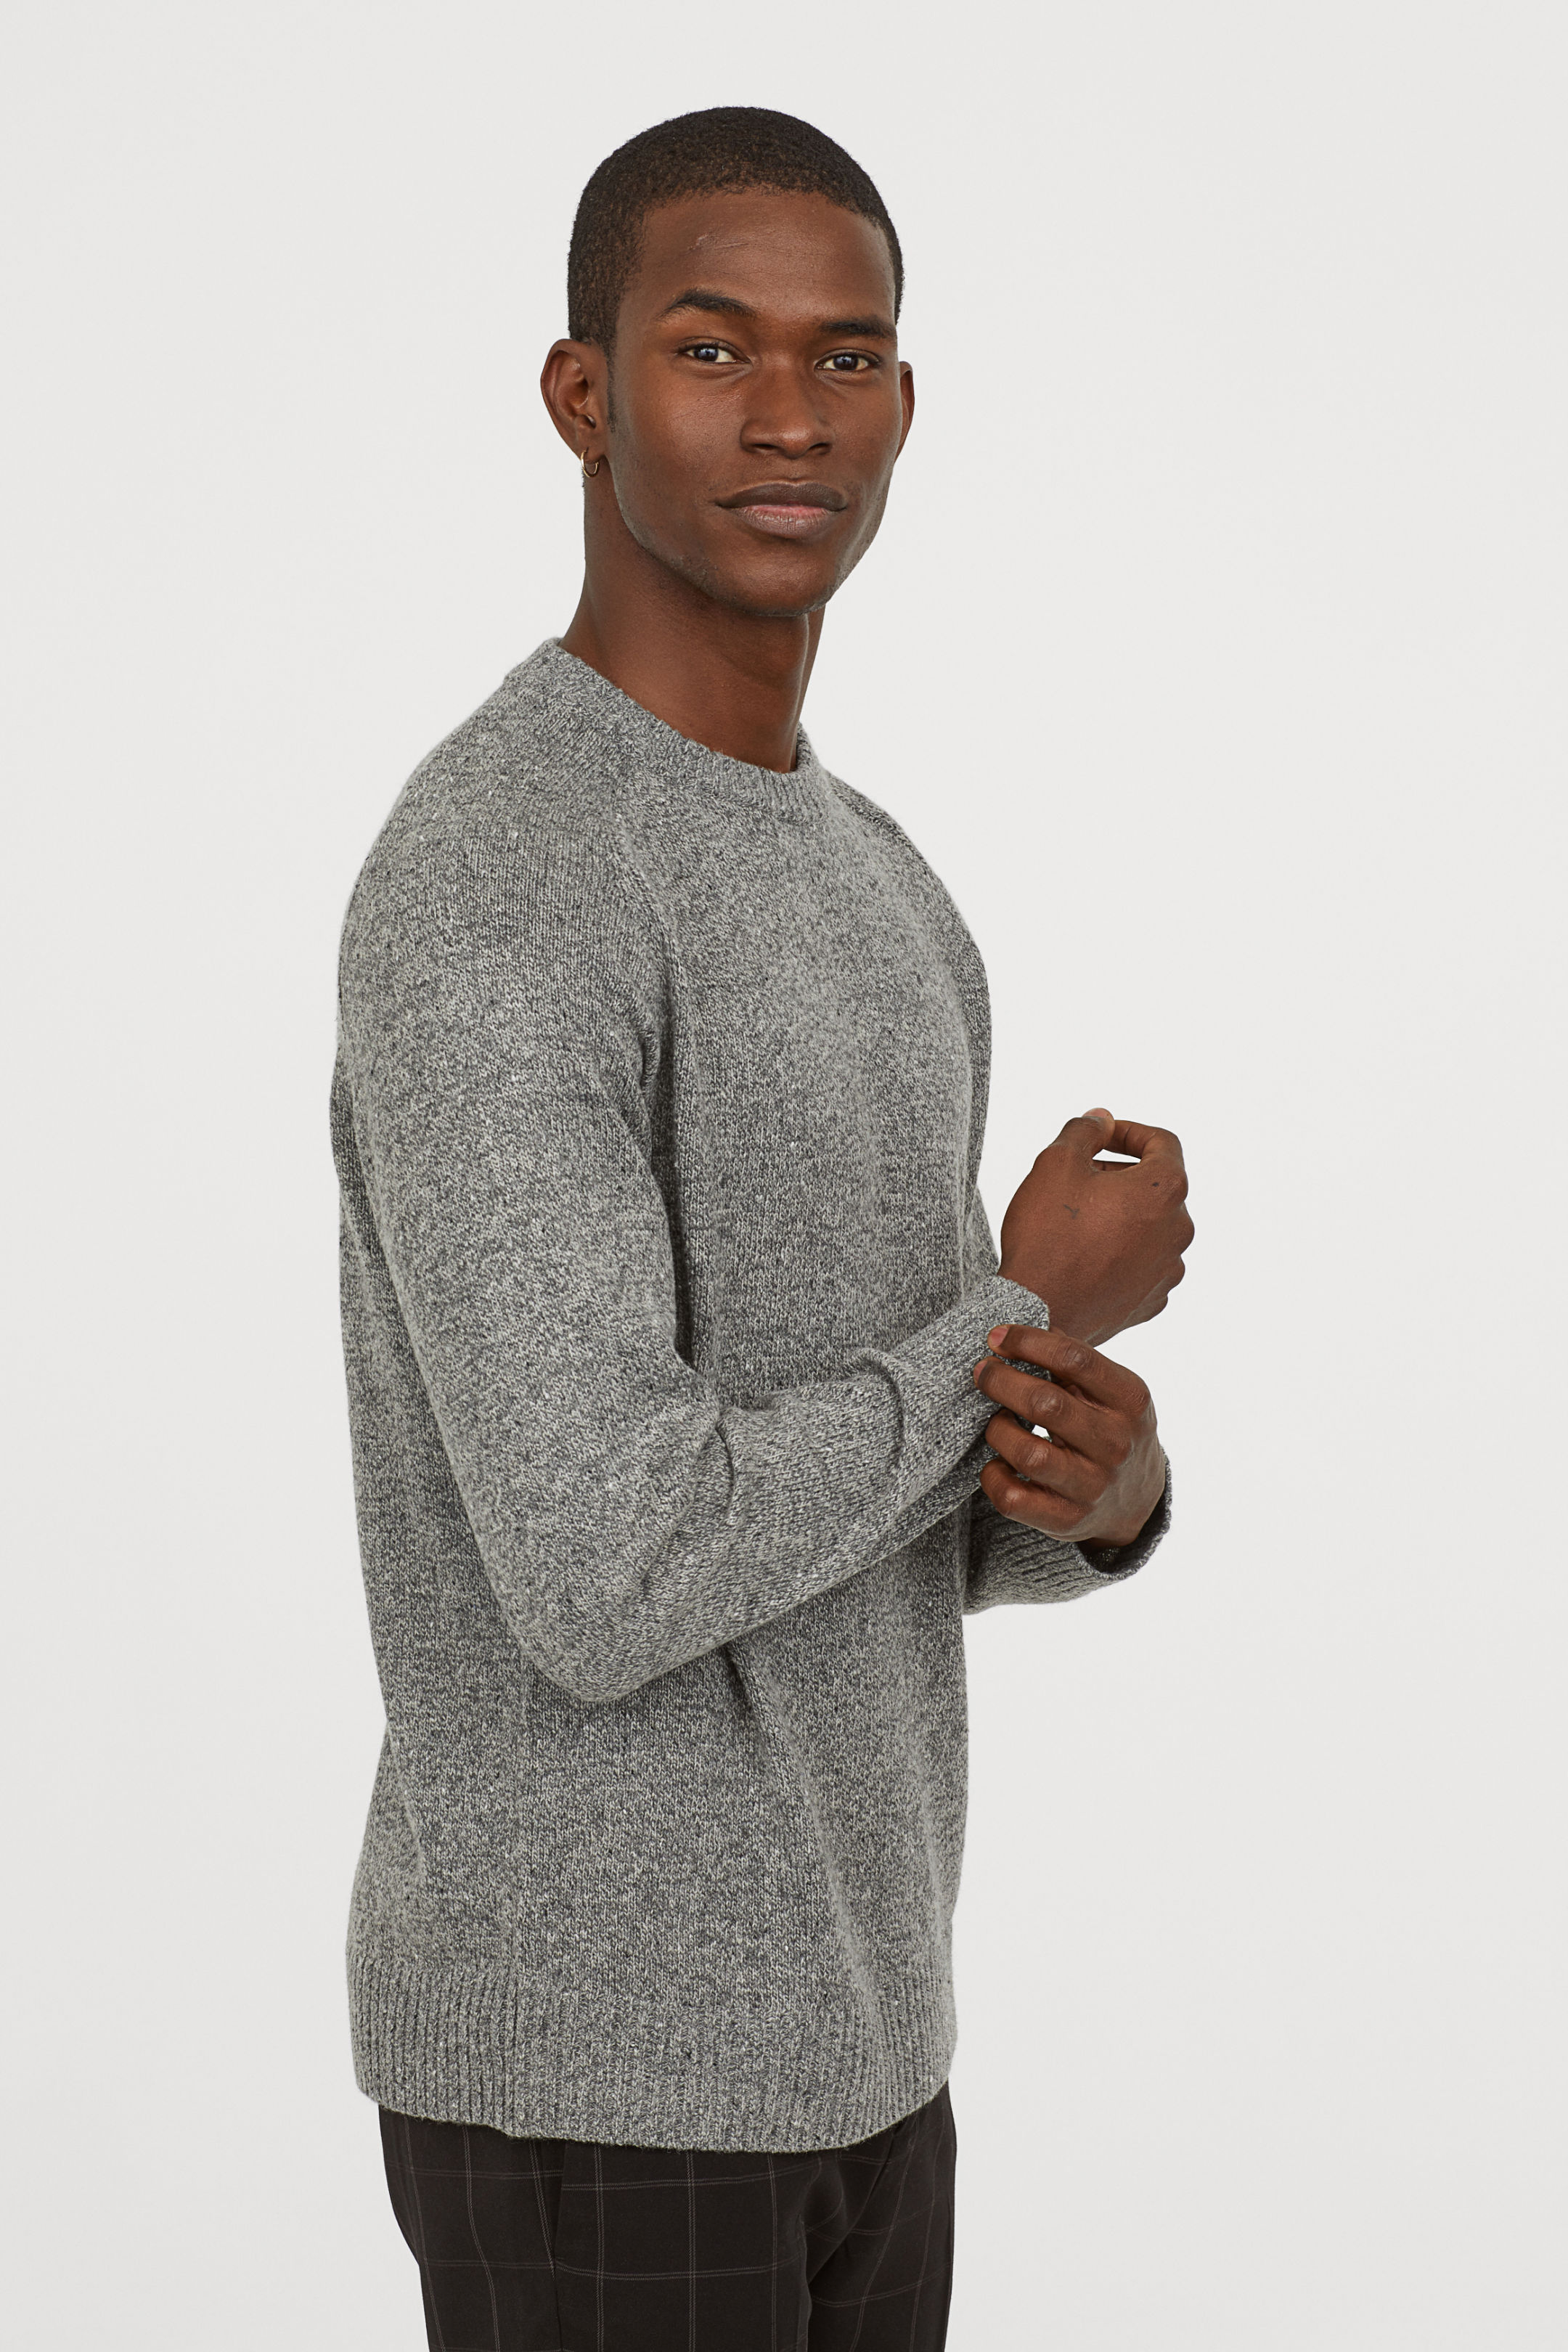 Cool affordable gifts under $15:  Men's fine-knit sweater at H&M